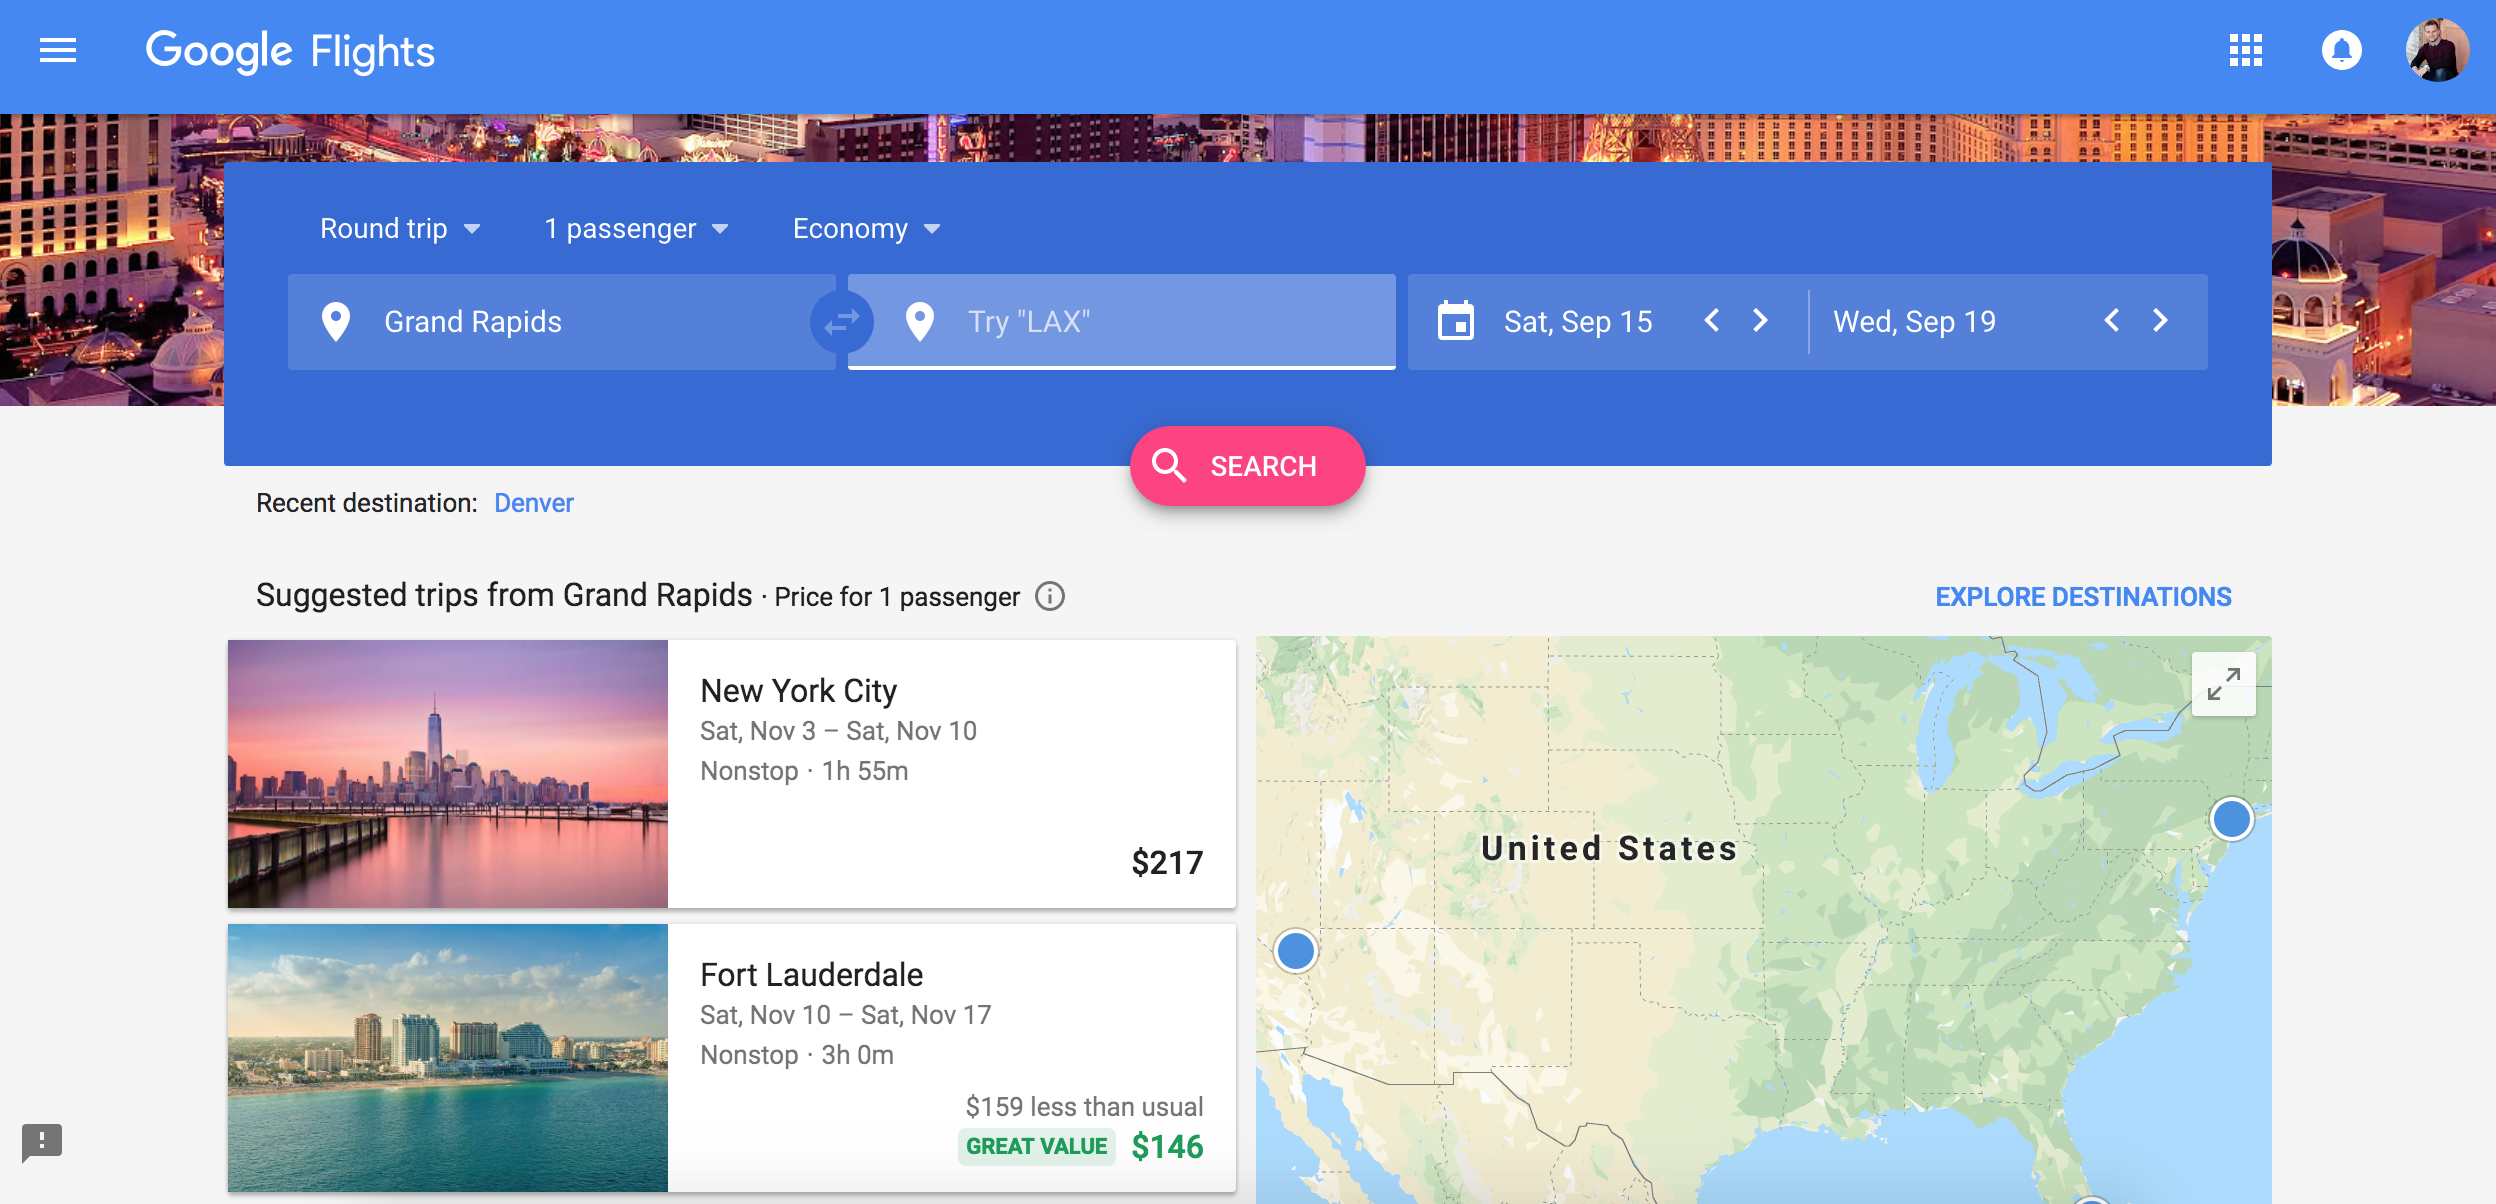 The Google Flights machine will often suggest cheaper trips for you based on your location